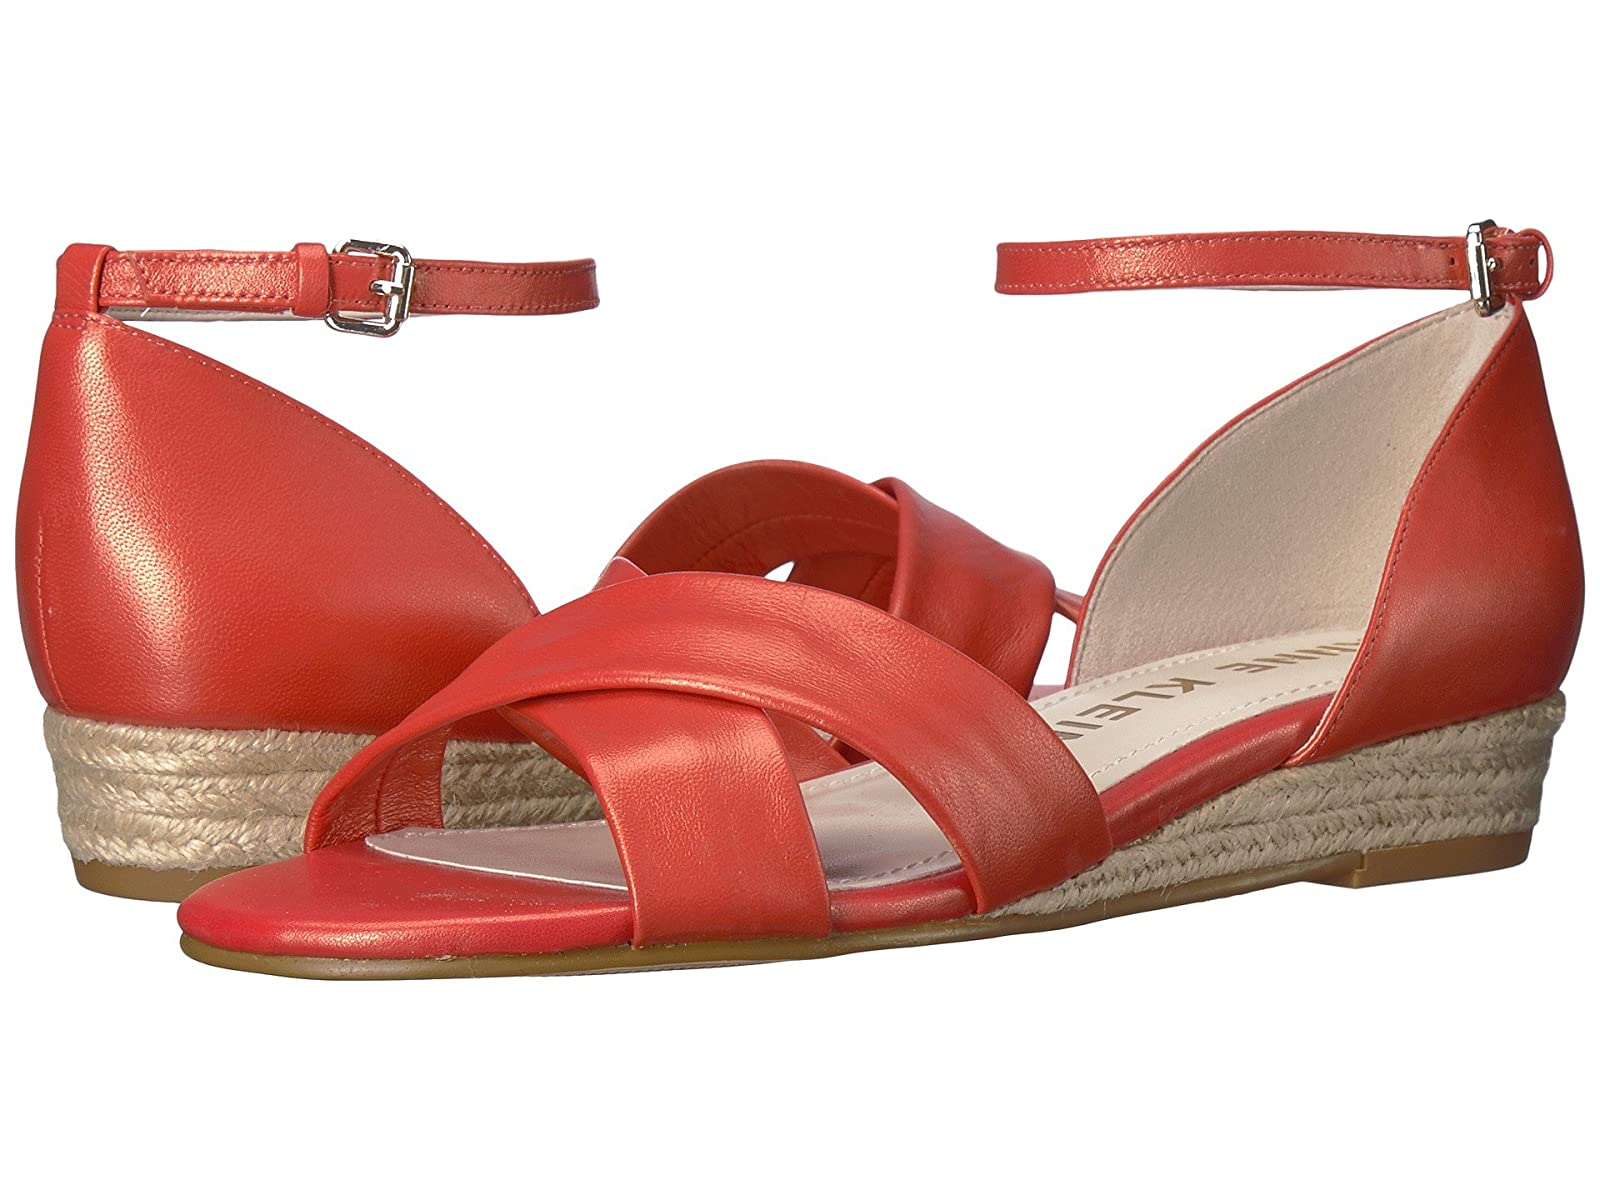 Anne Klein NanettaComfortable and distinctive shoes